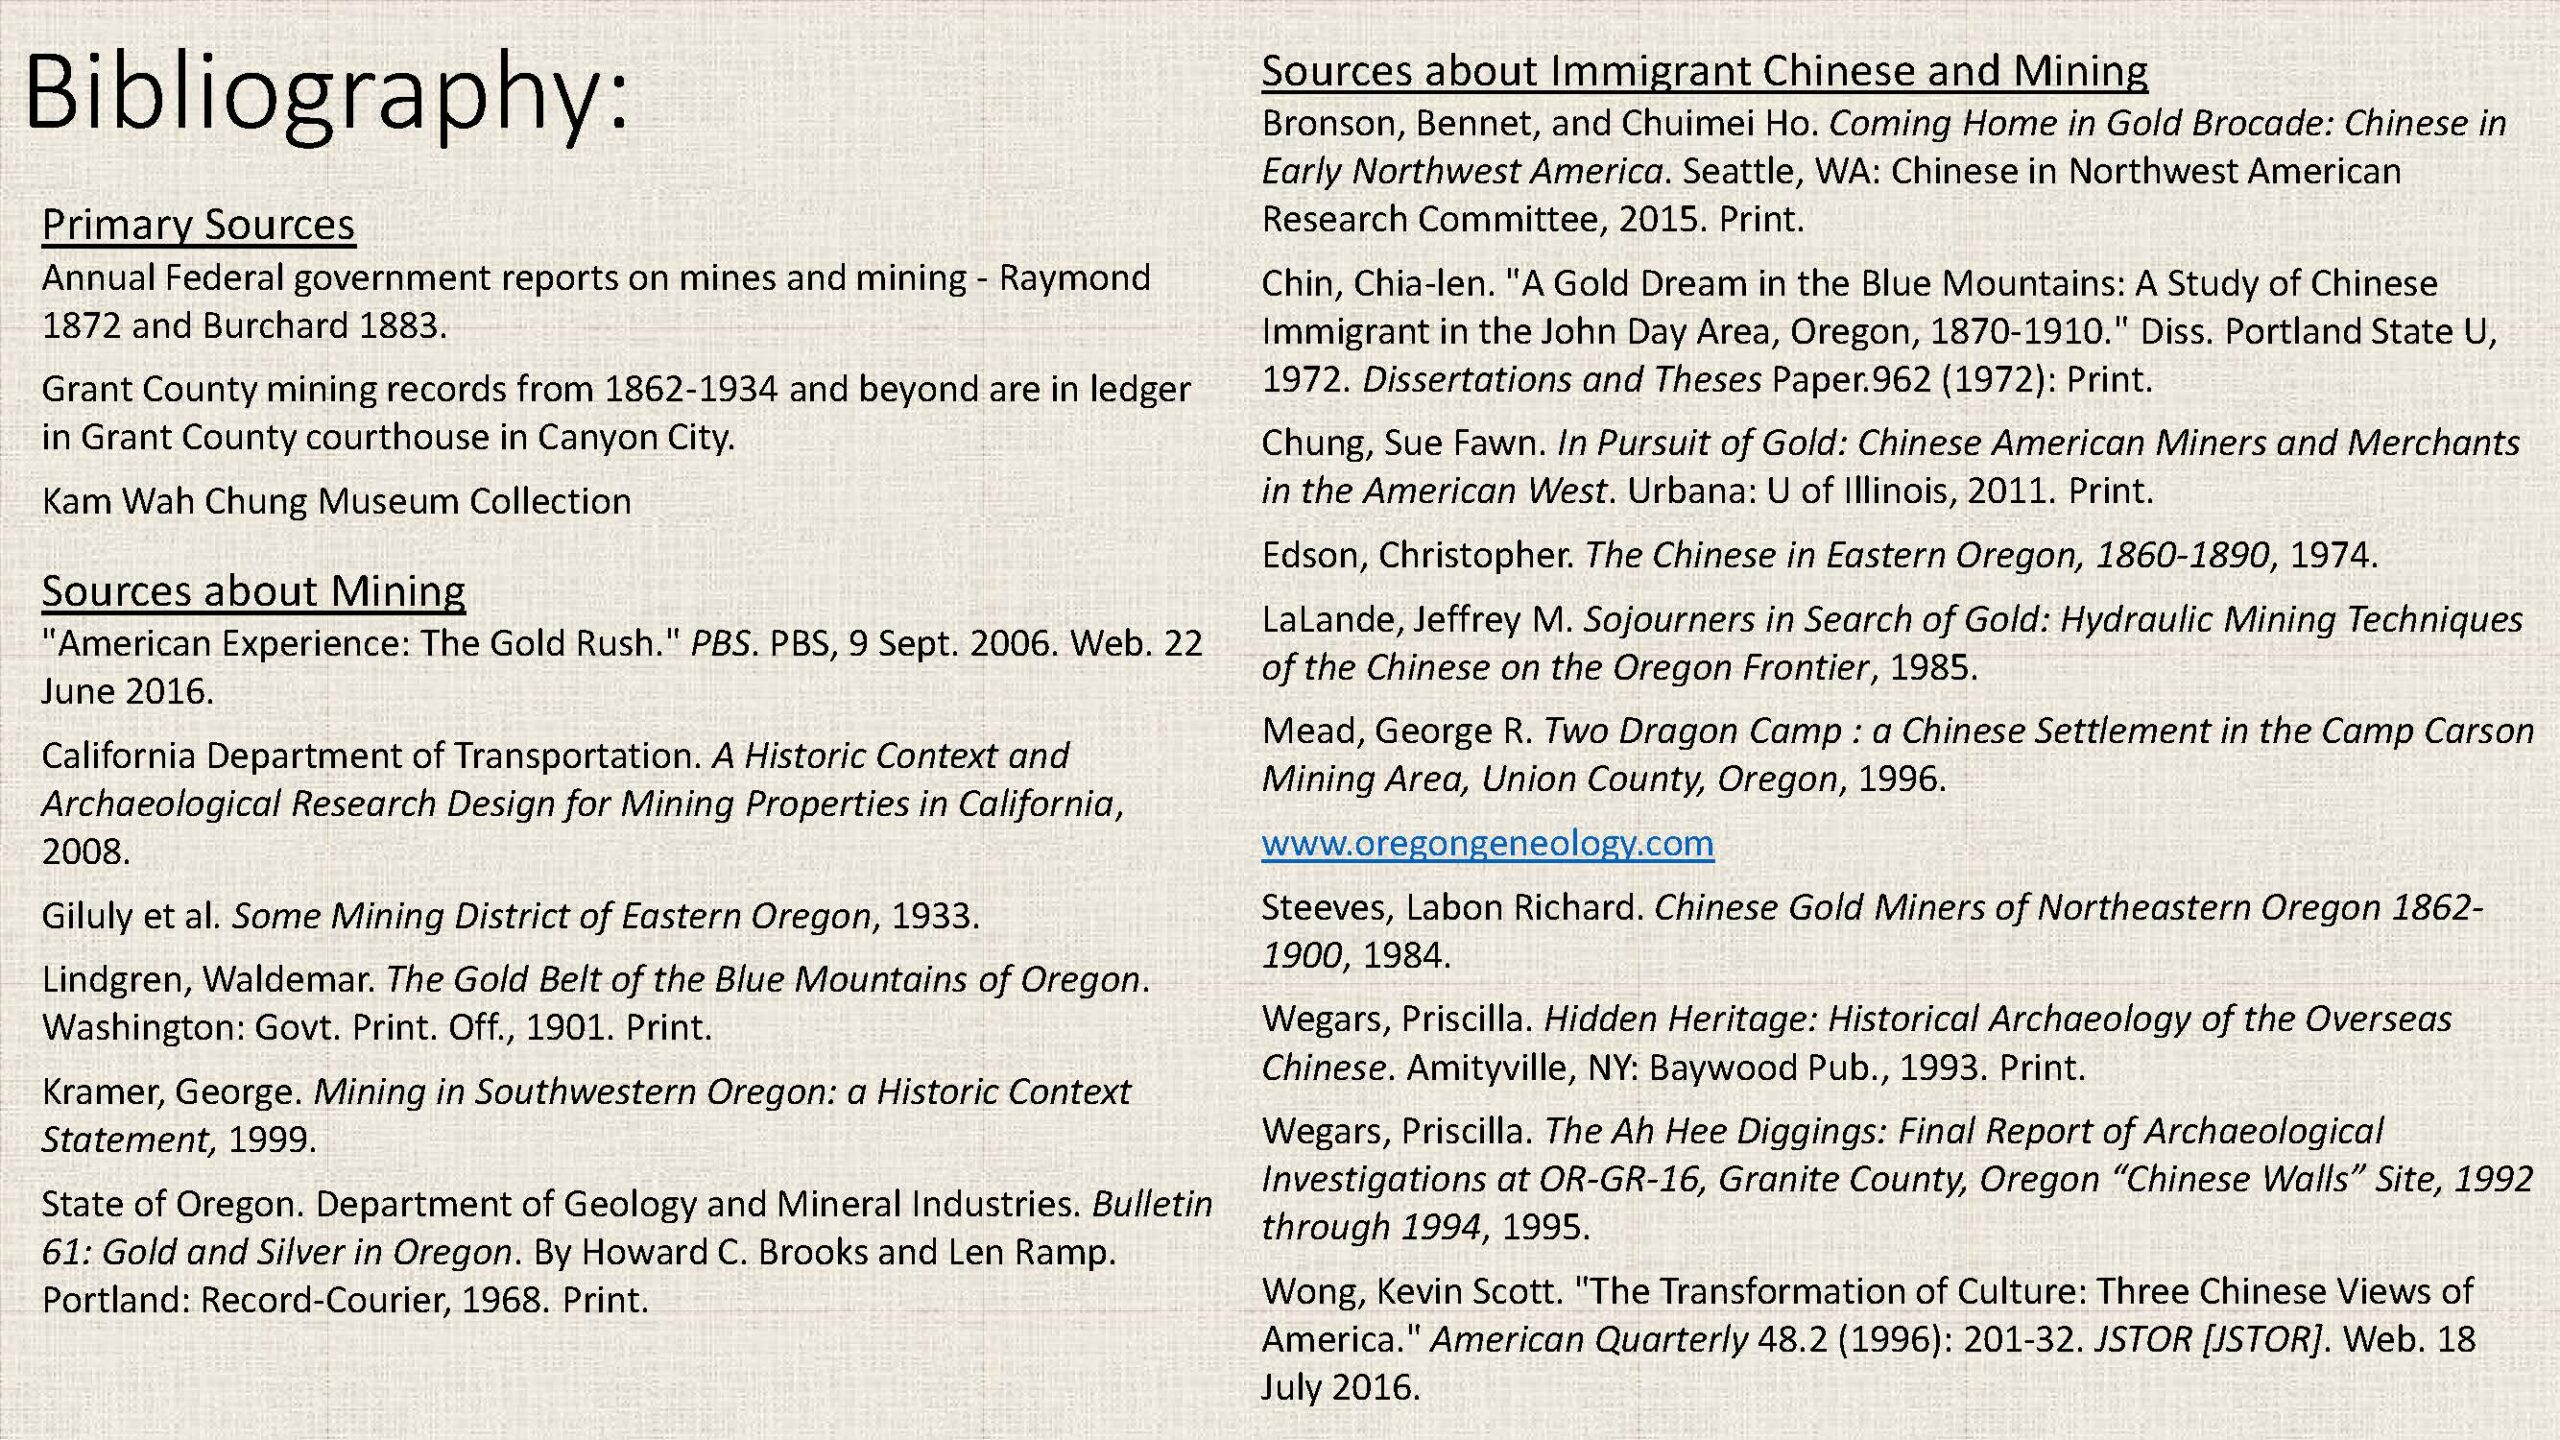 Bibliography, Primary Sources, Sources about Mining, Sources about Immigrant Chinese and Mining